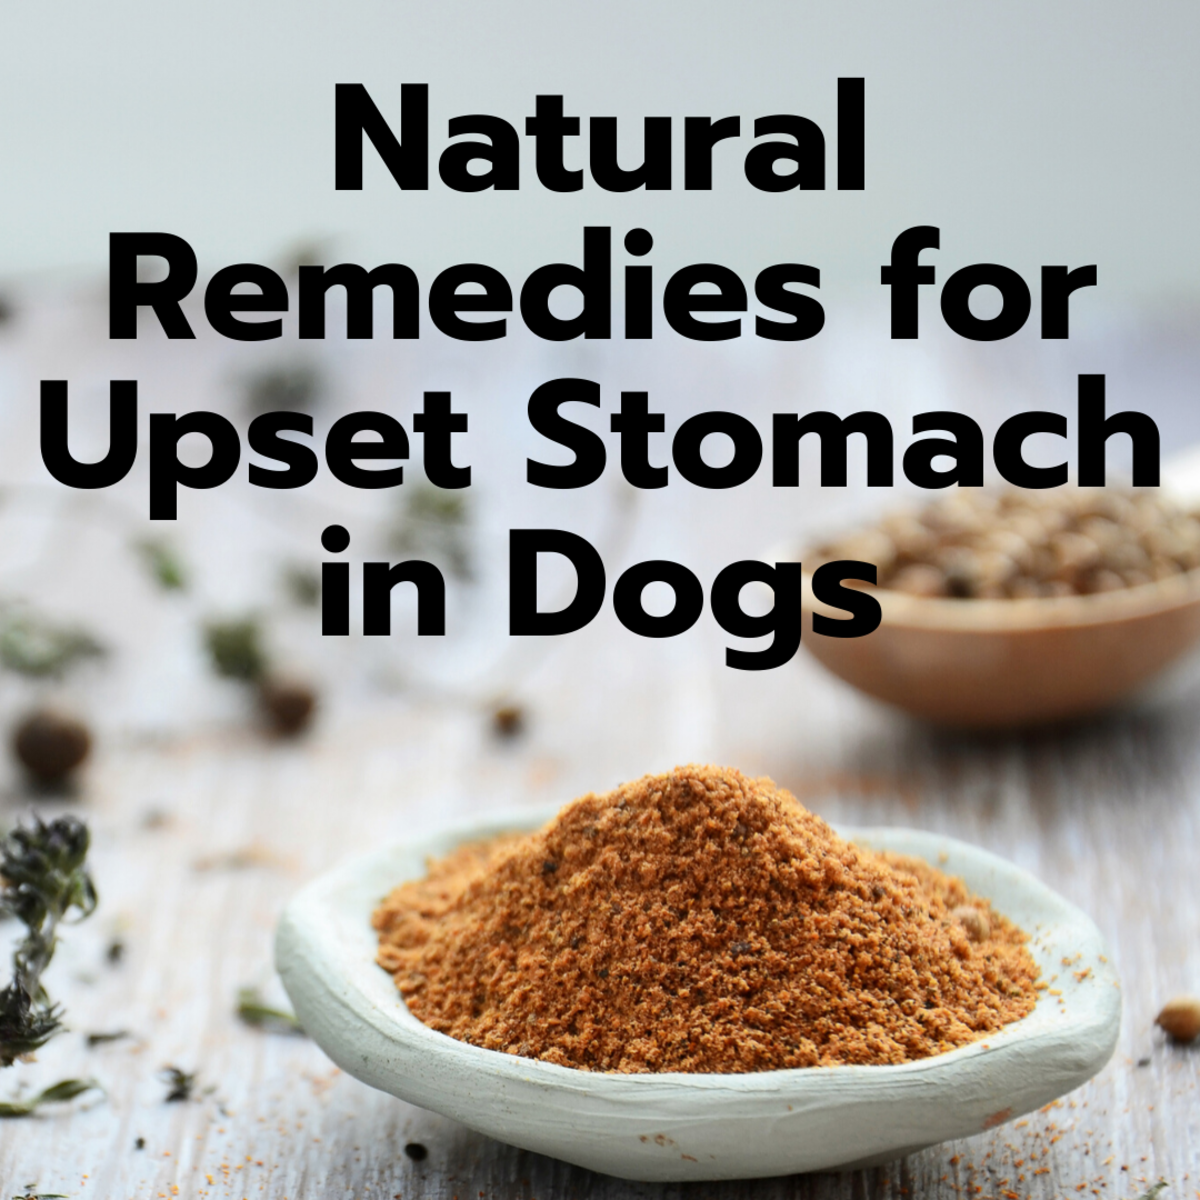 Natural Remedies for Dogs With Upset Stomach